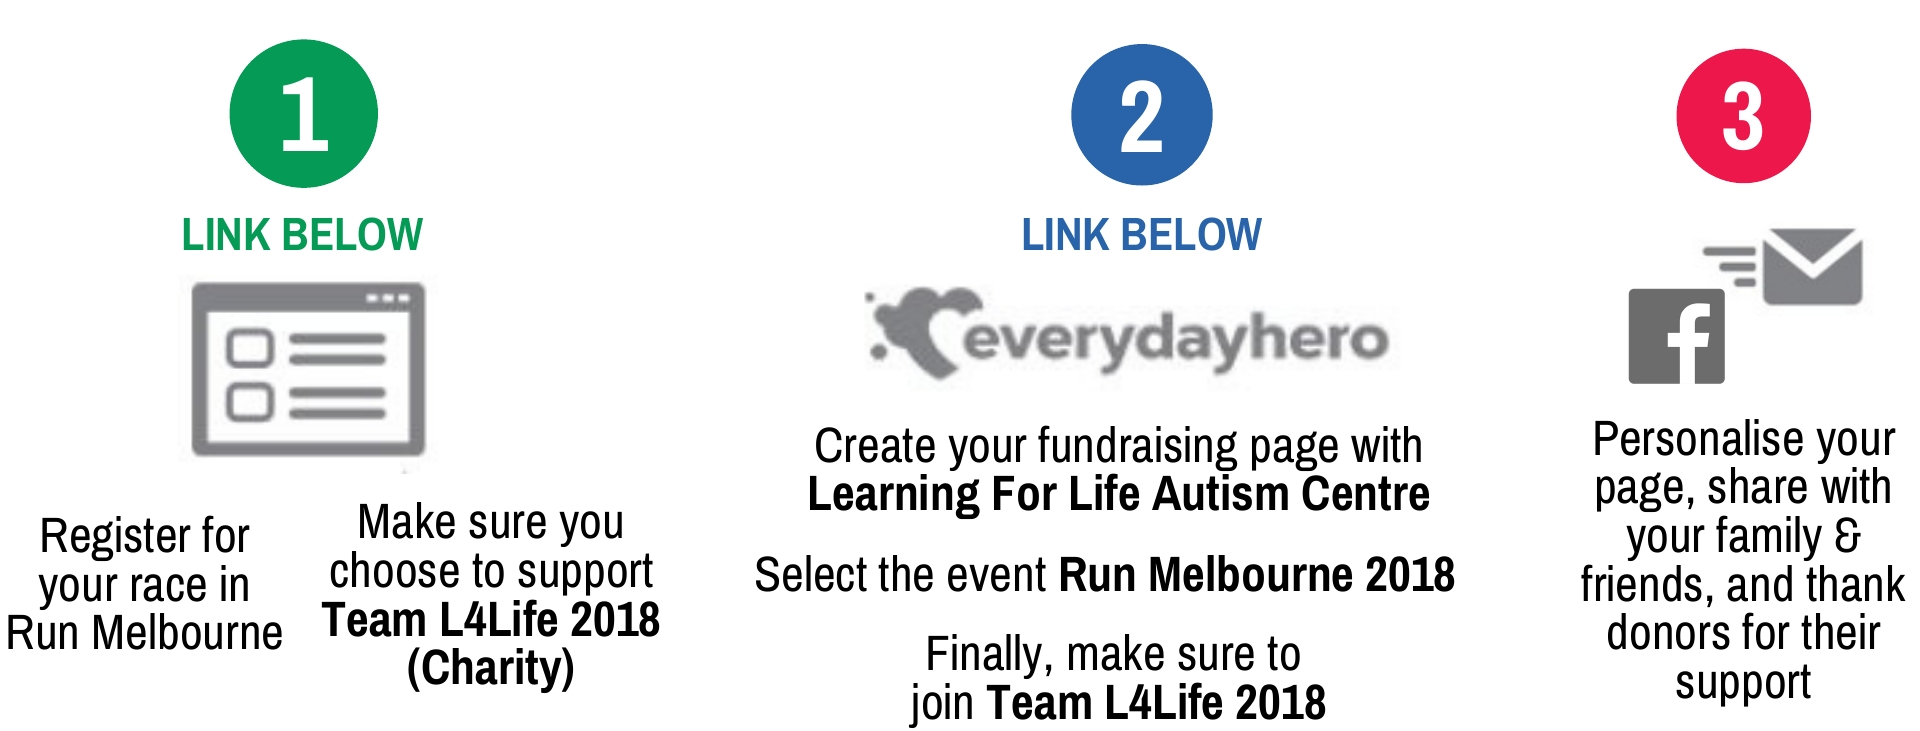 Team L4Life 2018 sign up steps for Run Melbourne